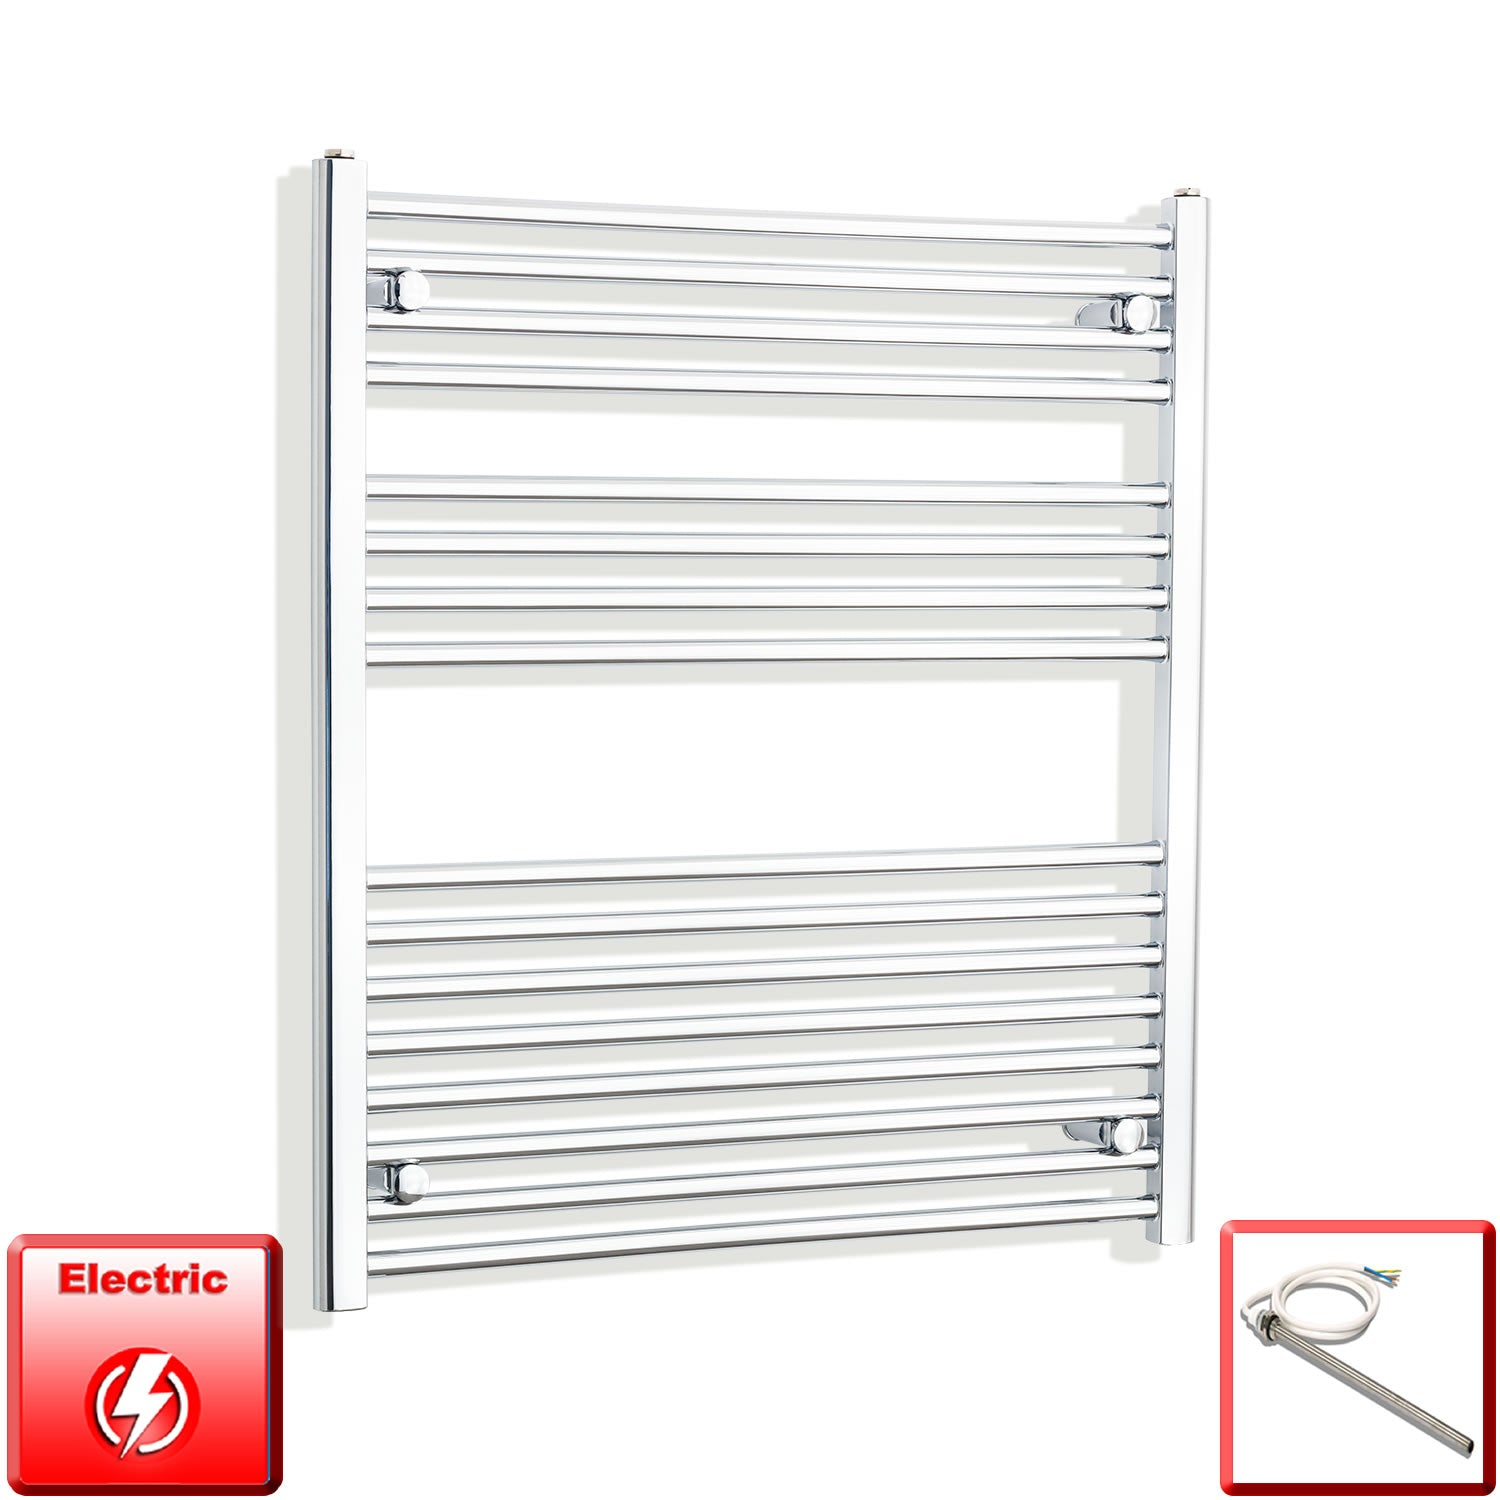 800mm Wide 900mm High Flat Chrome Pre-Filled Electric Heated Towel Rail Radiator HTR,Single Heat Element